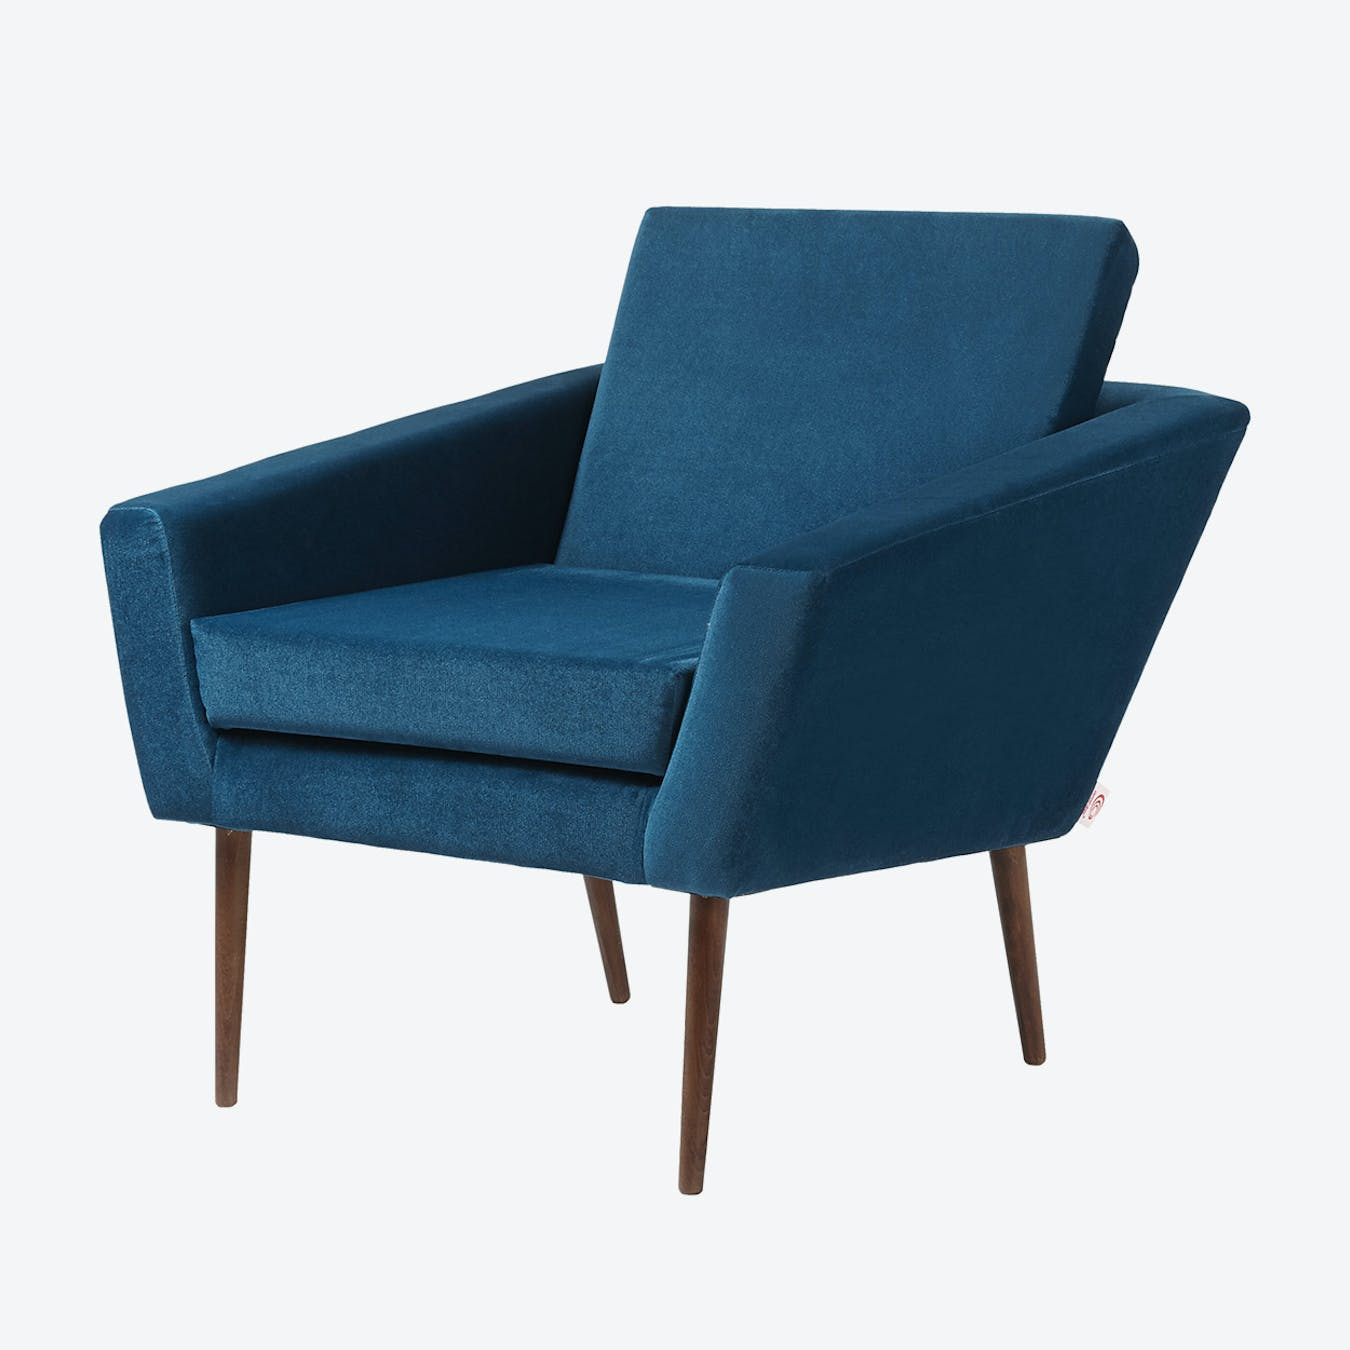 Supernova Chair - Velvet Line in Royal Blue